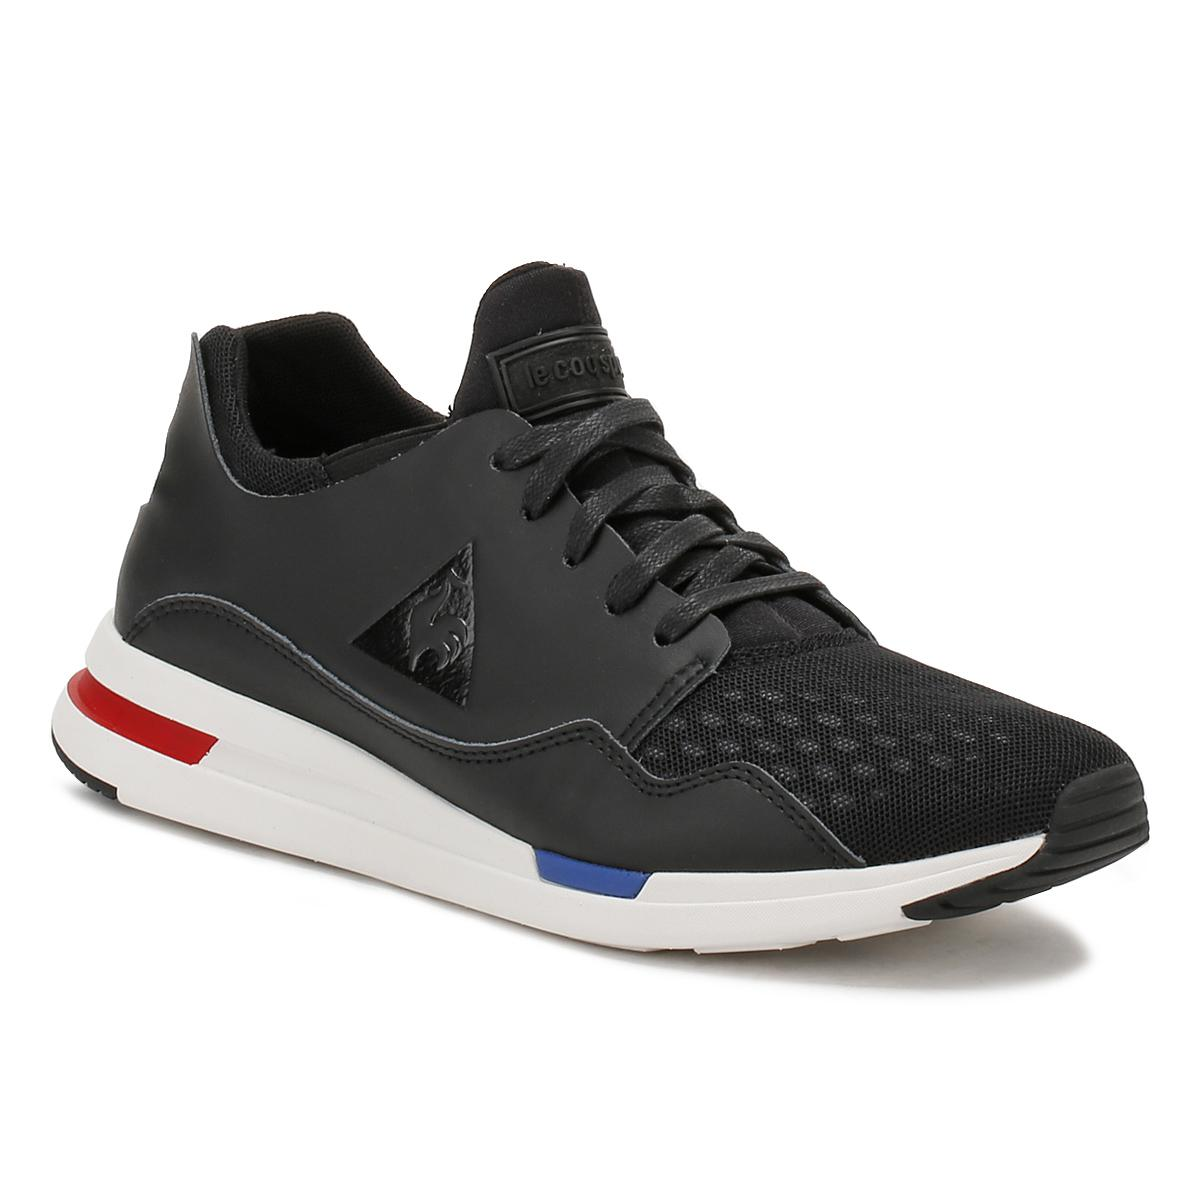 22199376410b Le Coq Sportif Mens Black Lcs R Pure Trainers in Black for Men - Lyst